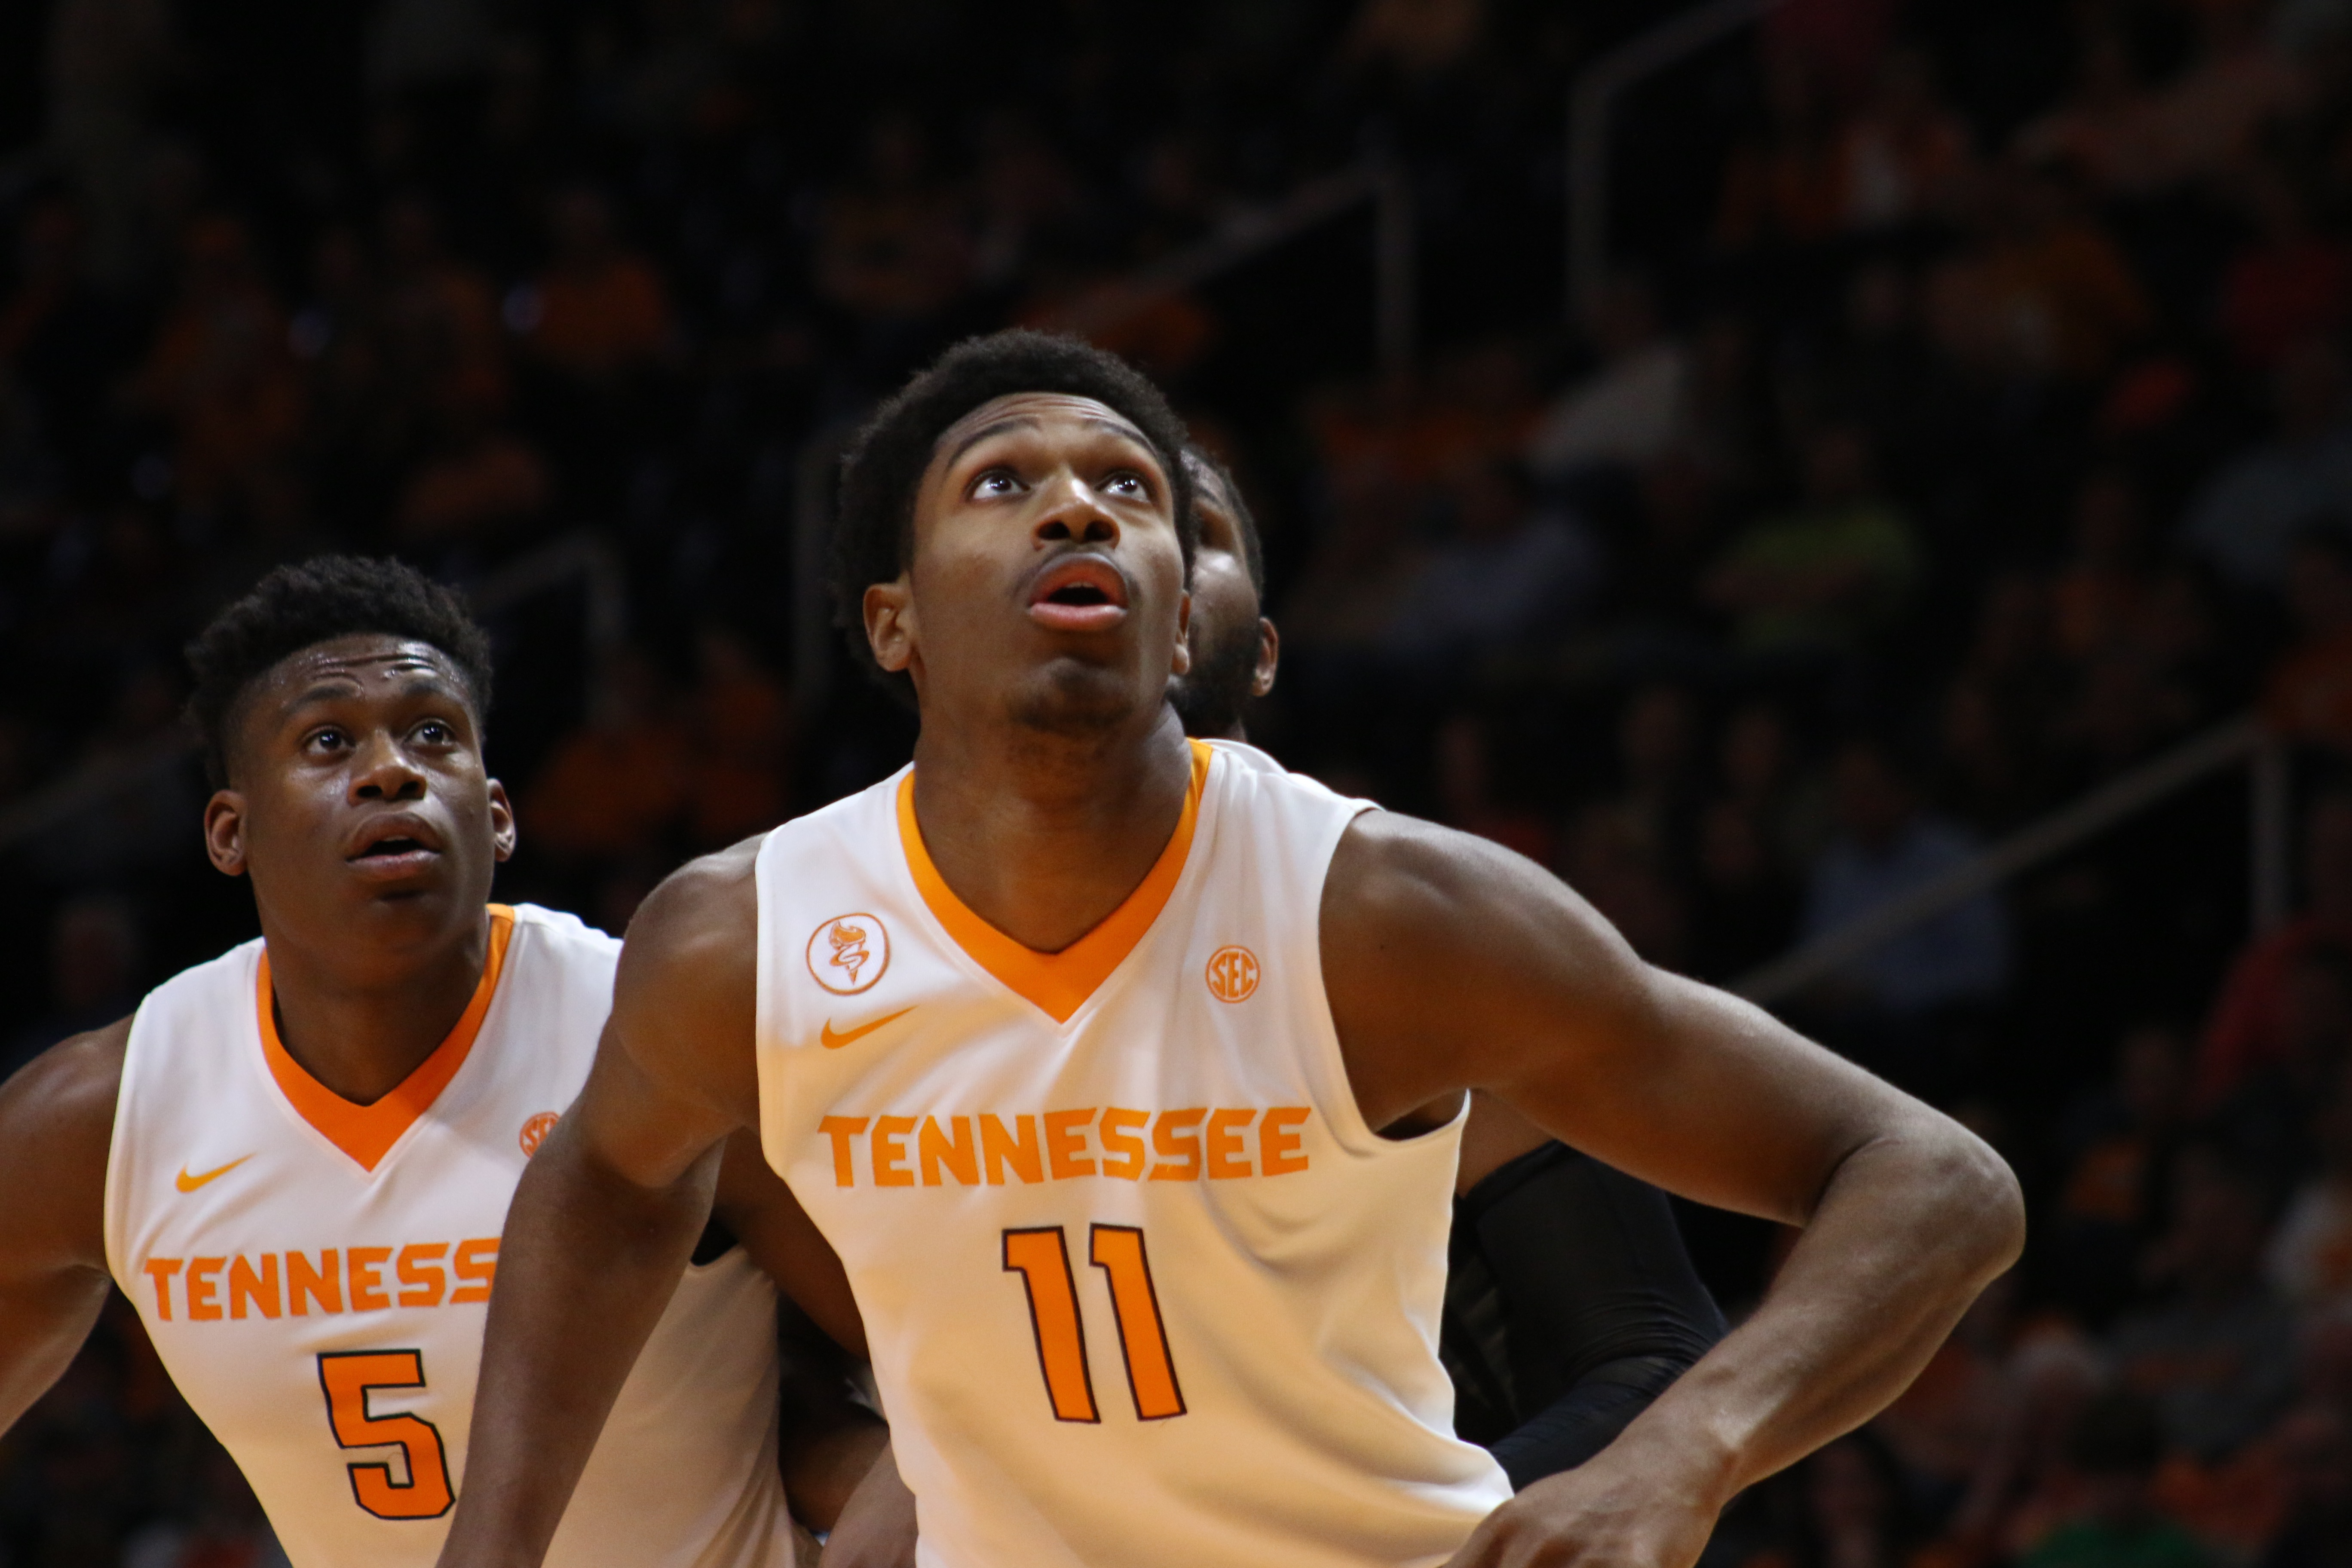 Tennessee beats NC State 67-58 for 3rd in Battle 4 Atlantis